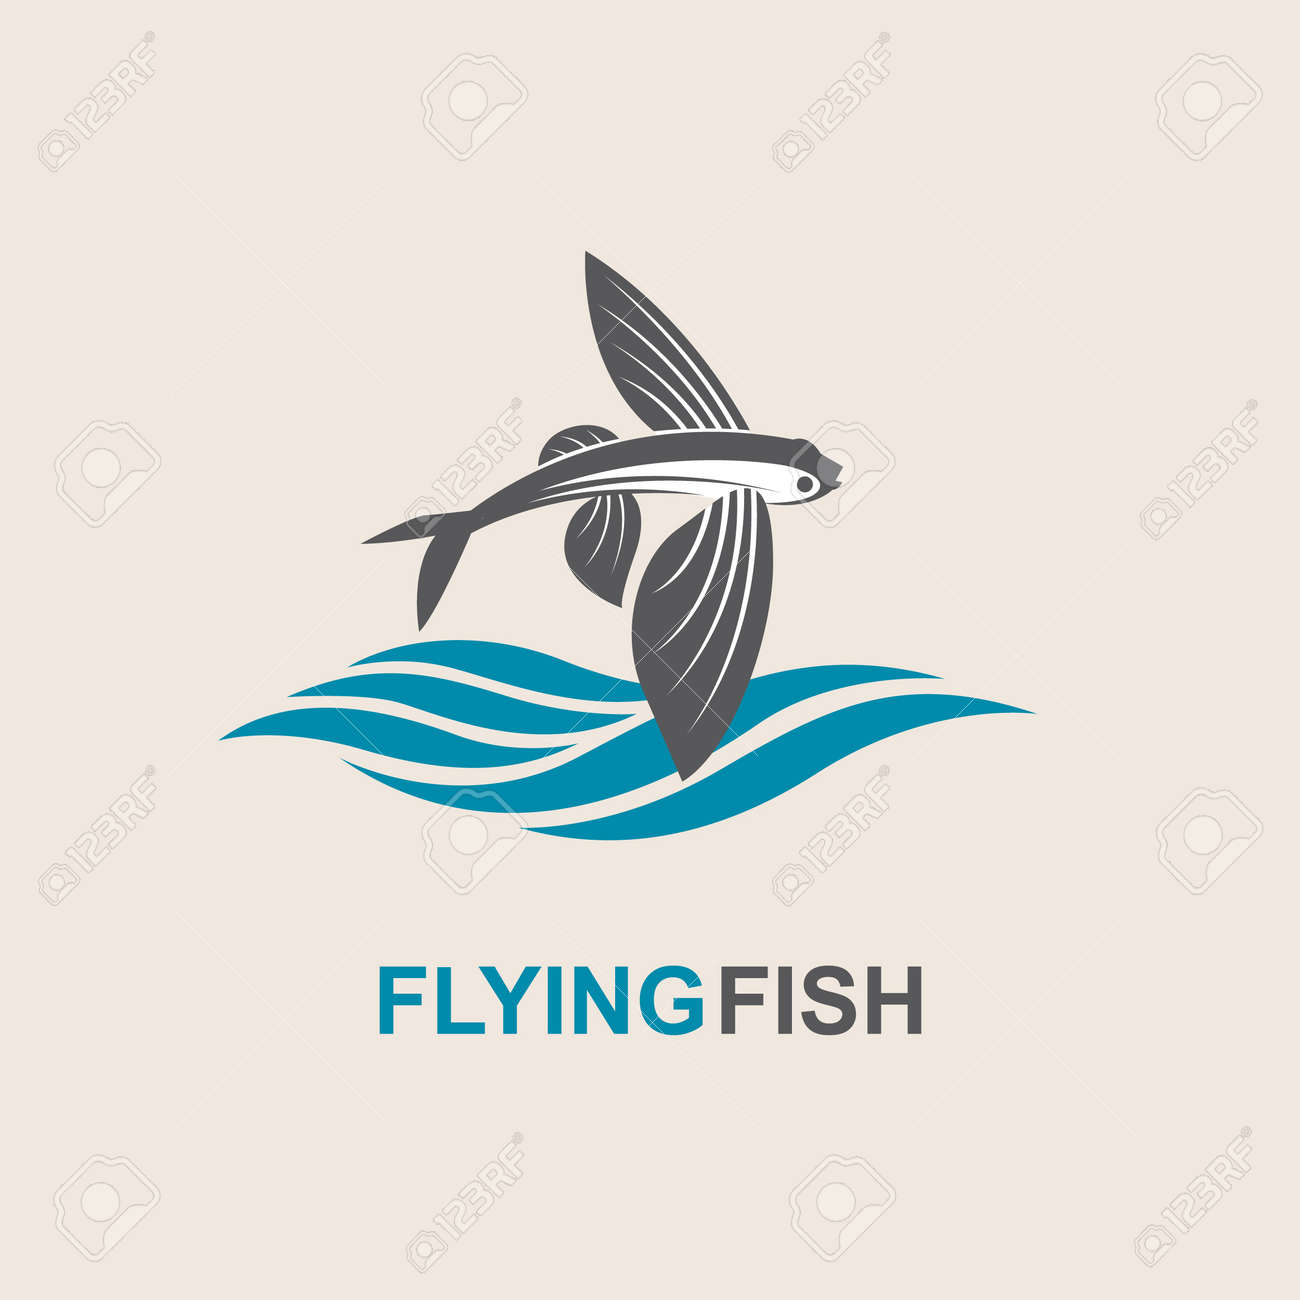 Icon Of Flying Fish With Waves Royalty Free Cliparts Vectors And